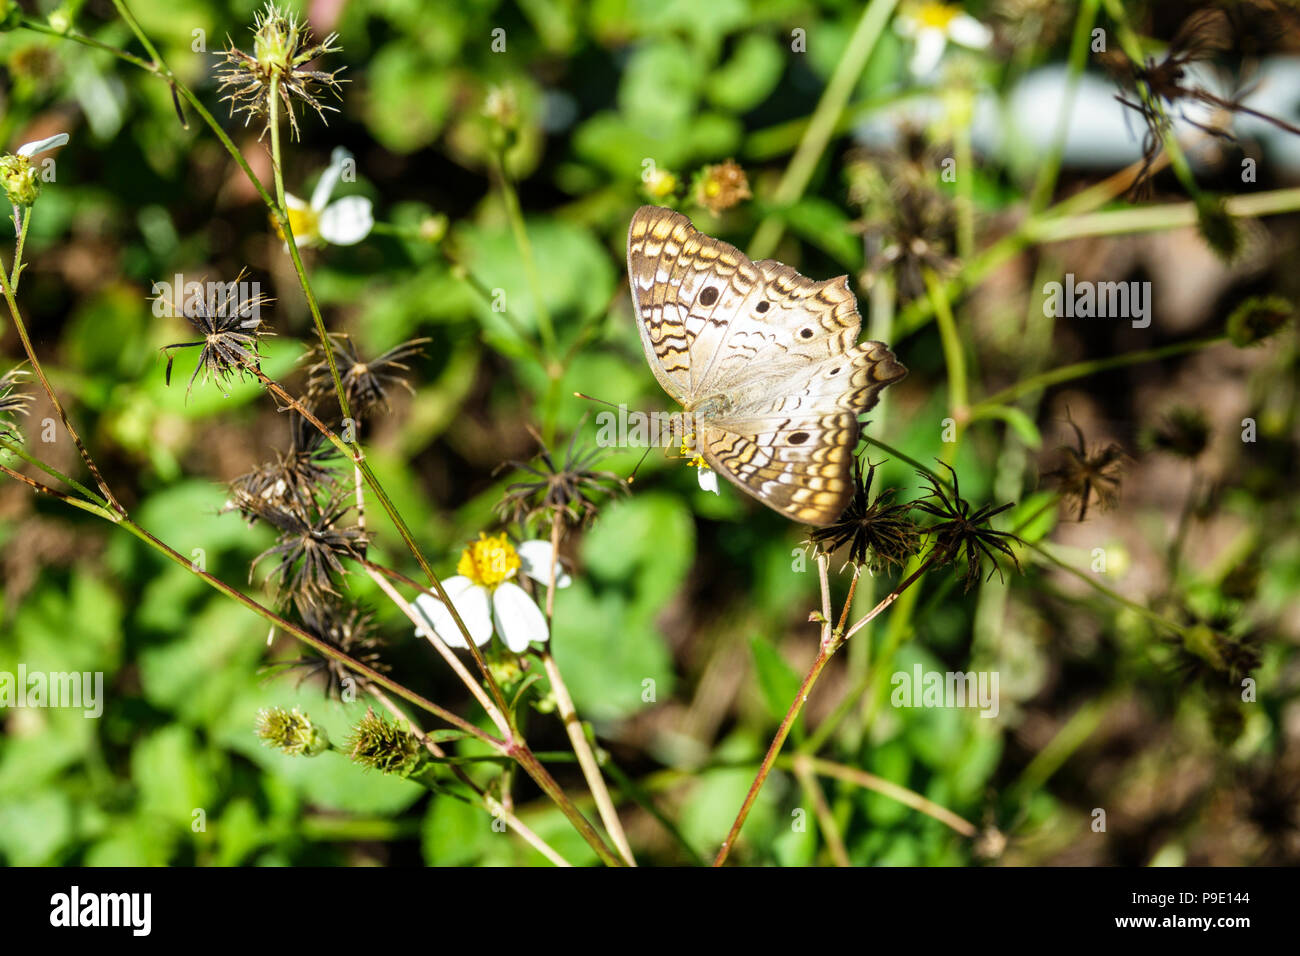 Florida Gainesville Micanopy Paynes Prairie Ecopassage Nature State Park Preserve Pontia protodice checkered white southern cabbage butterfly probosci - Stock Image